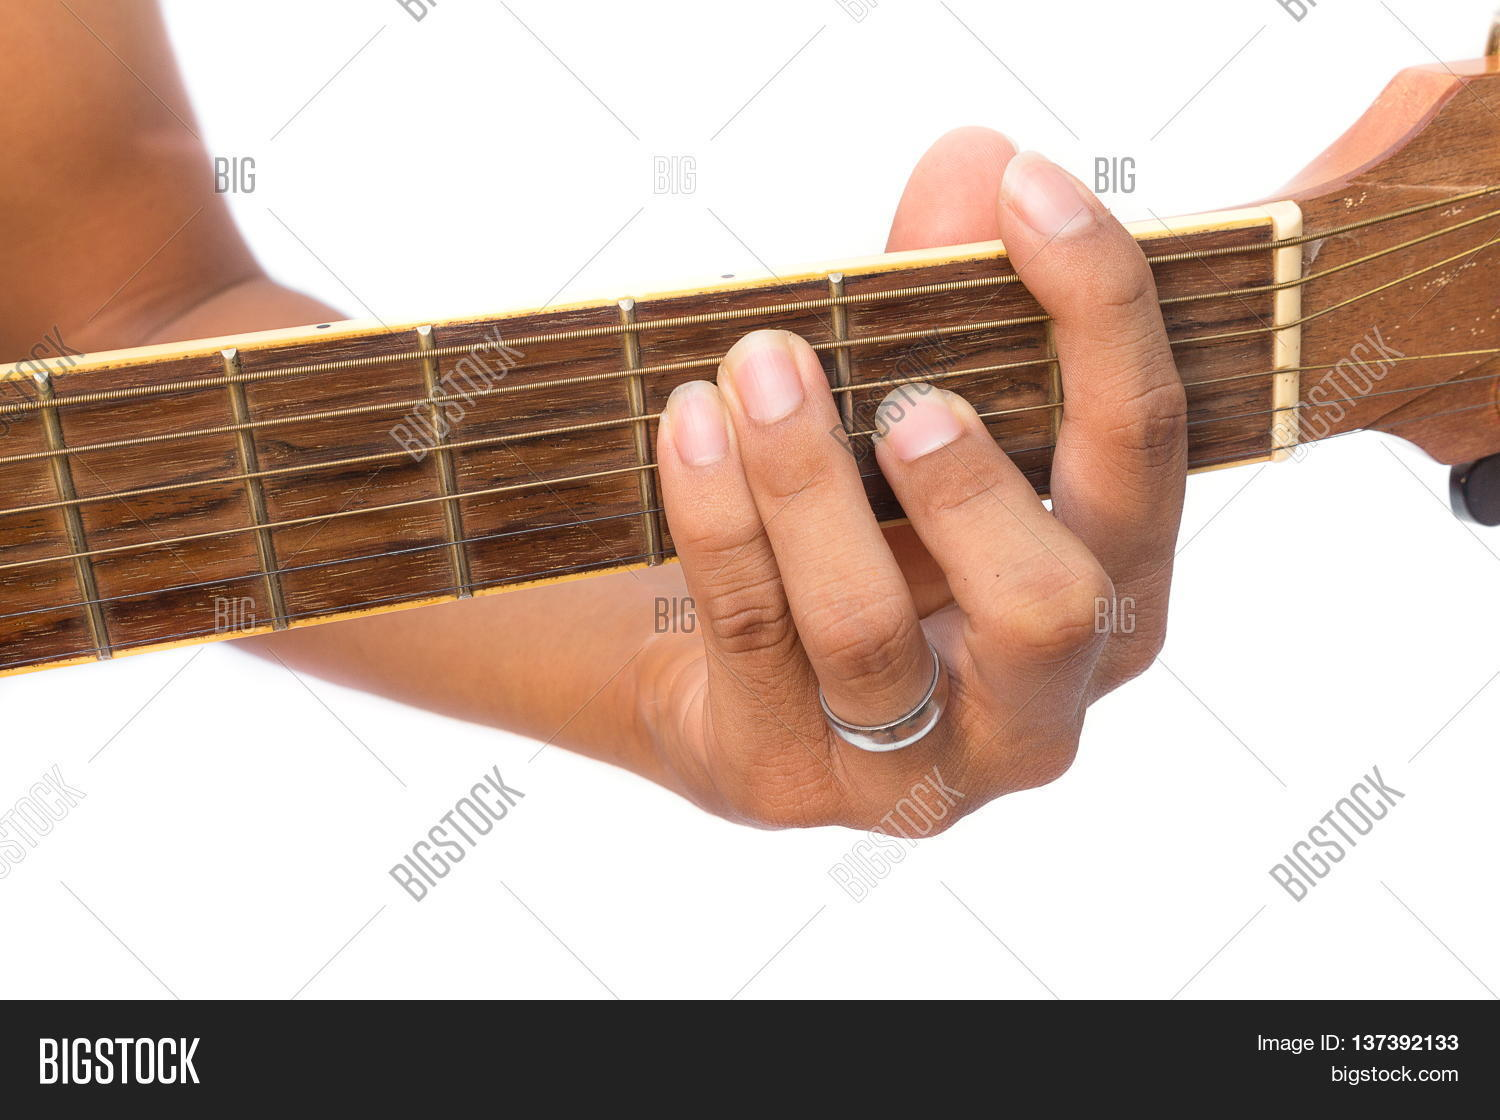 Acoustic Guitar Image Photo Free Trial Bigstock